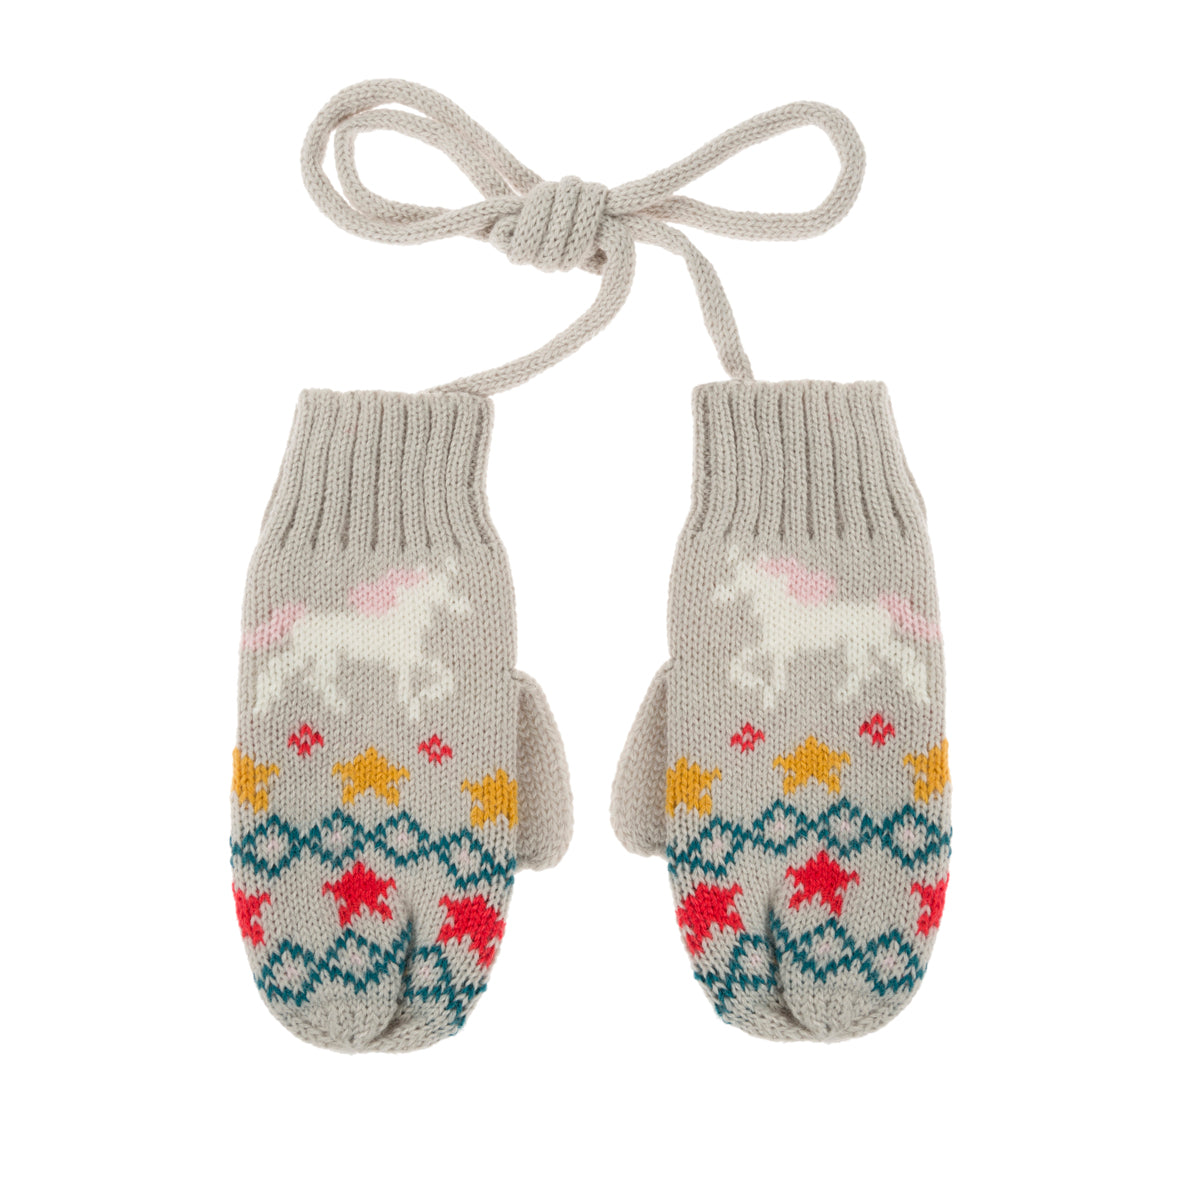 Unicorn Kids Knitted Mittens